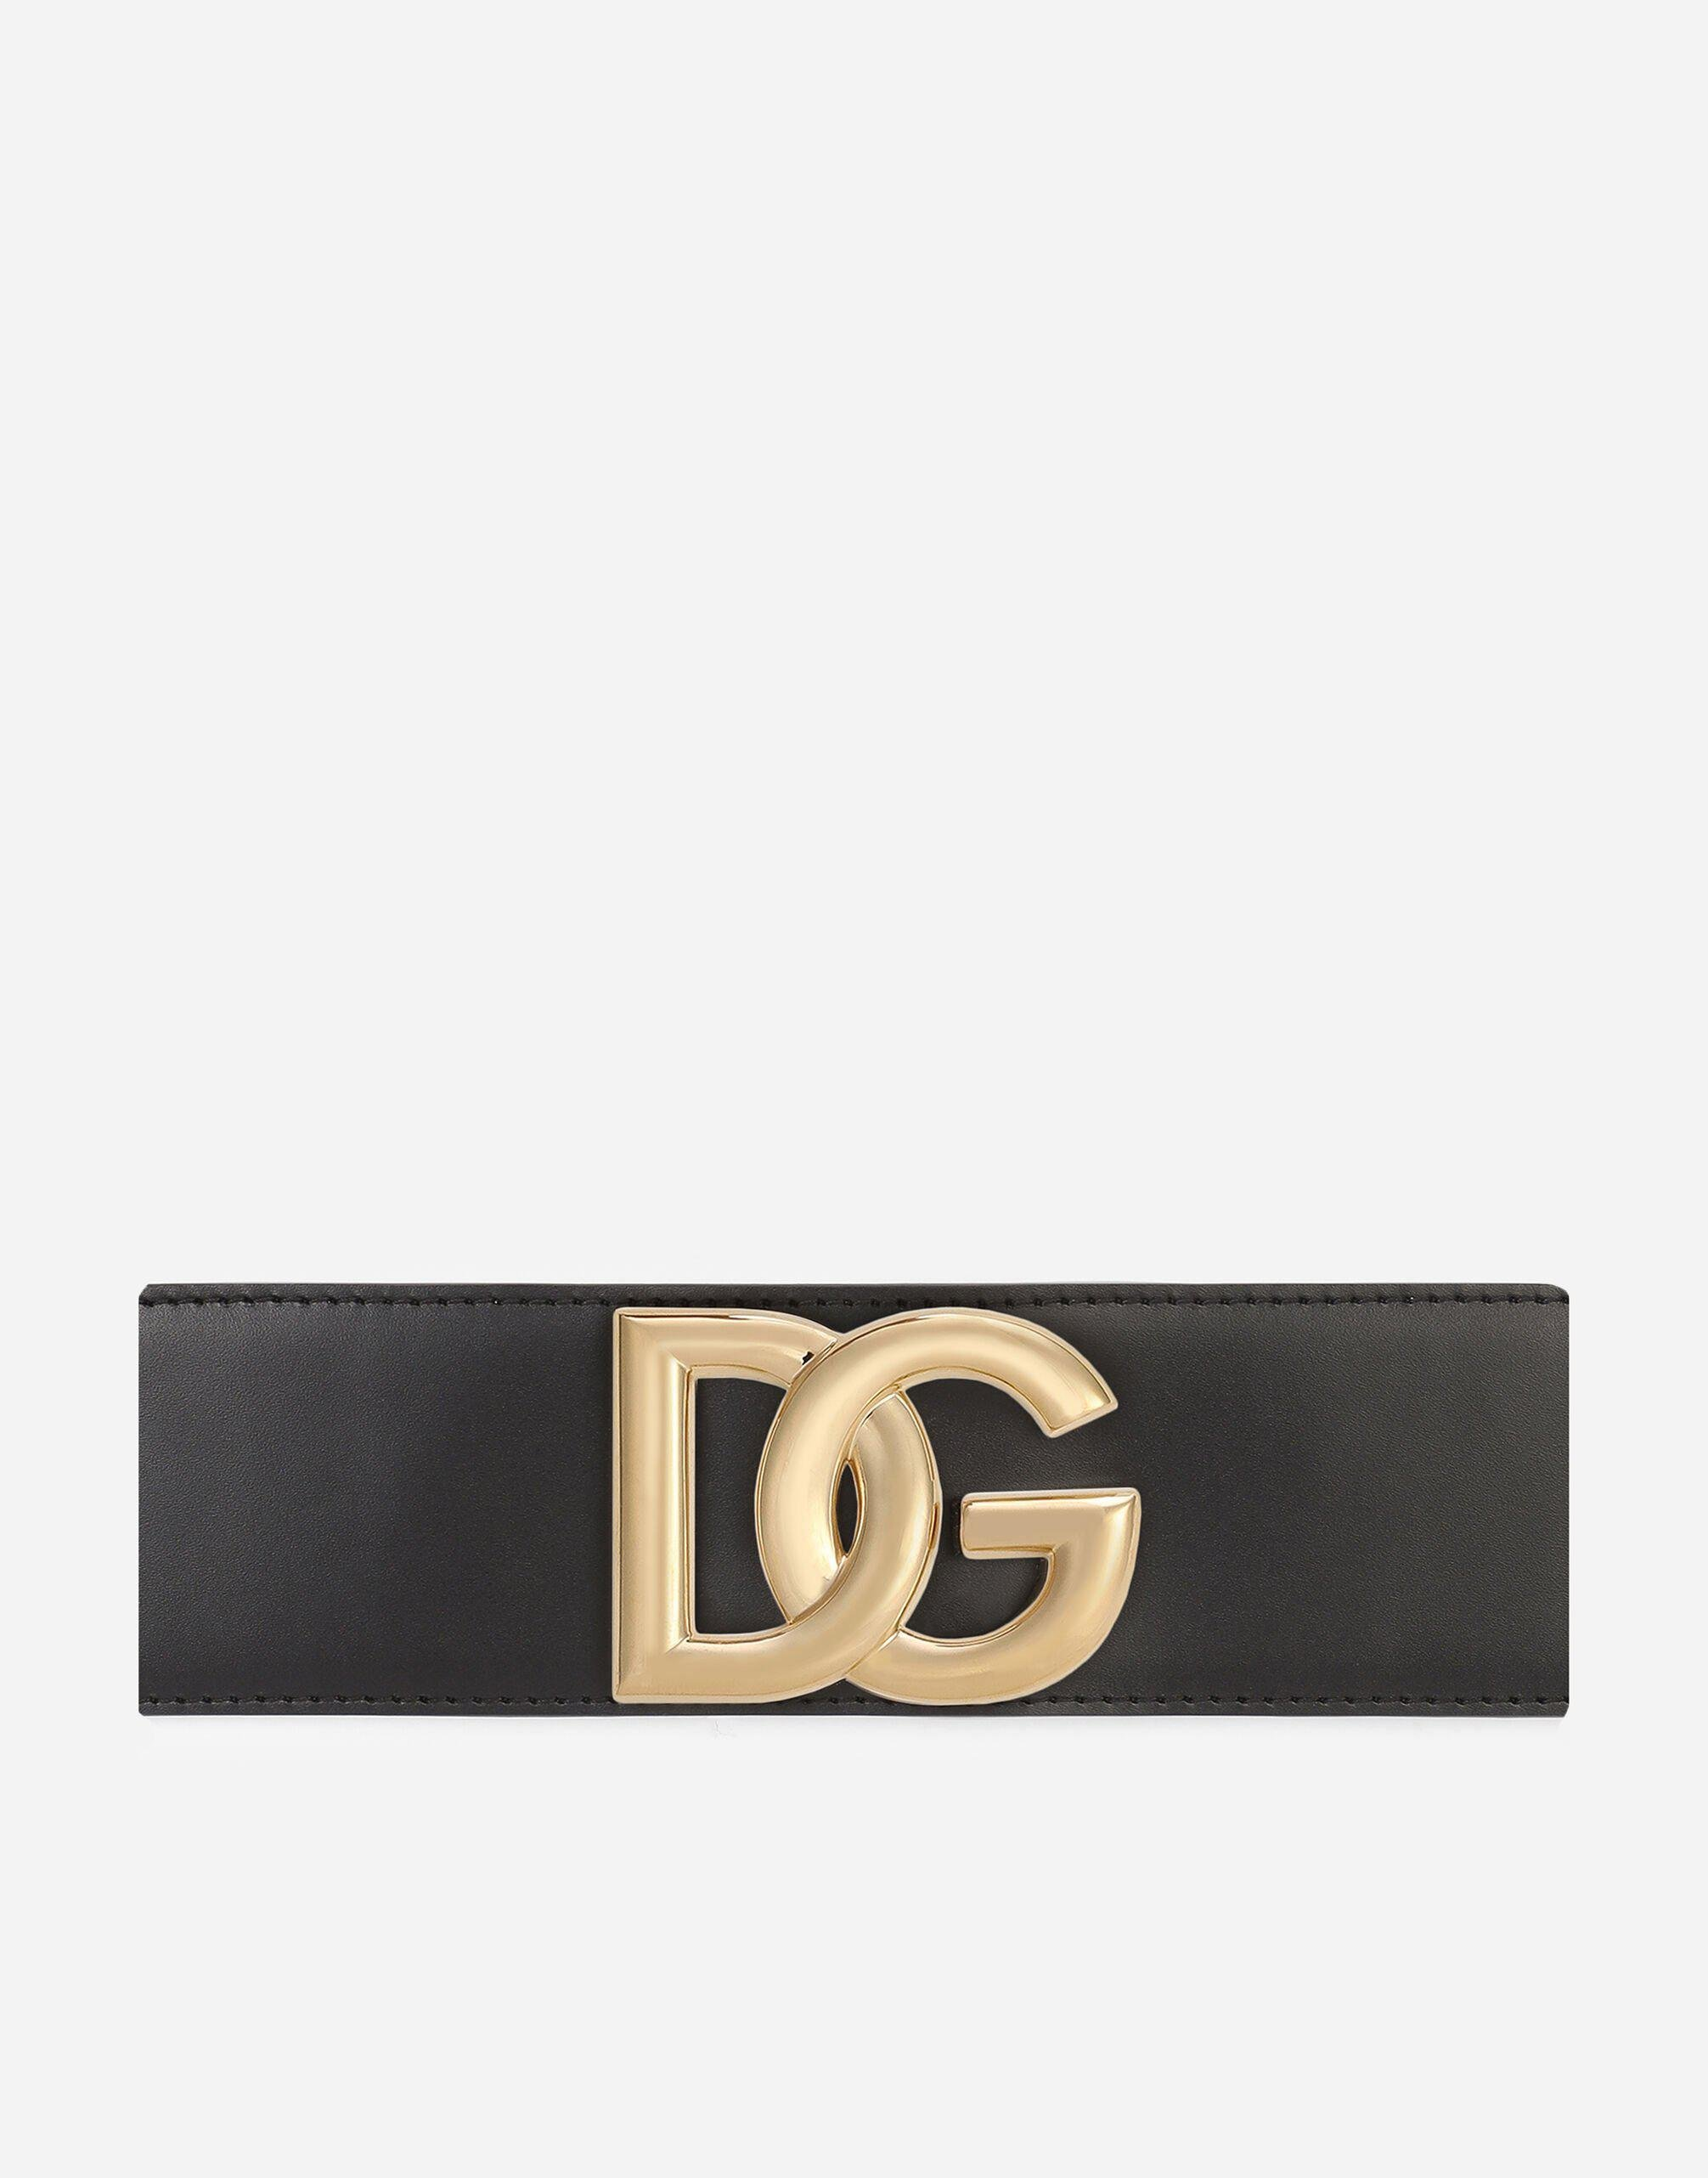 Stretch band and lux leather belt with DG logo